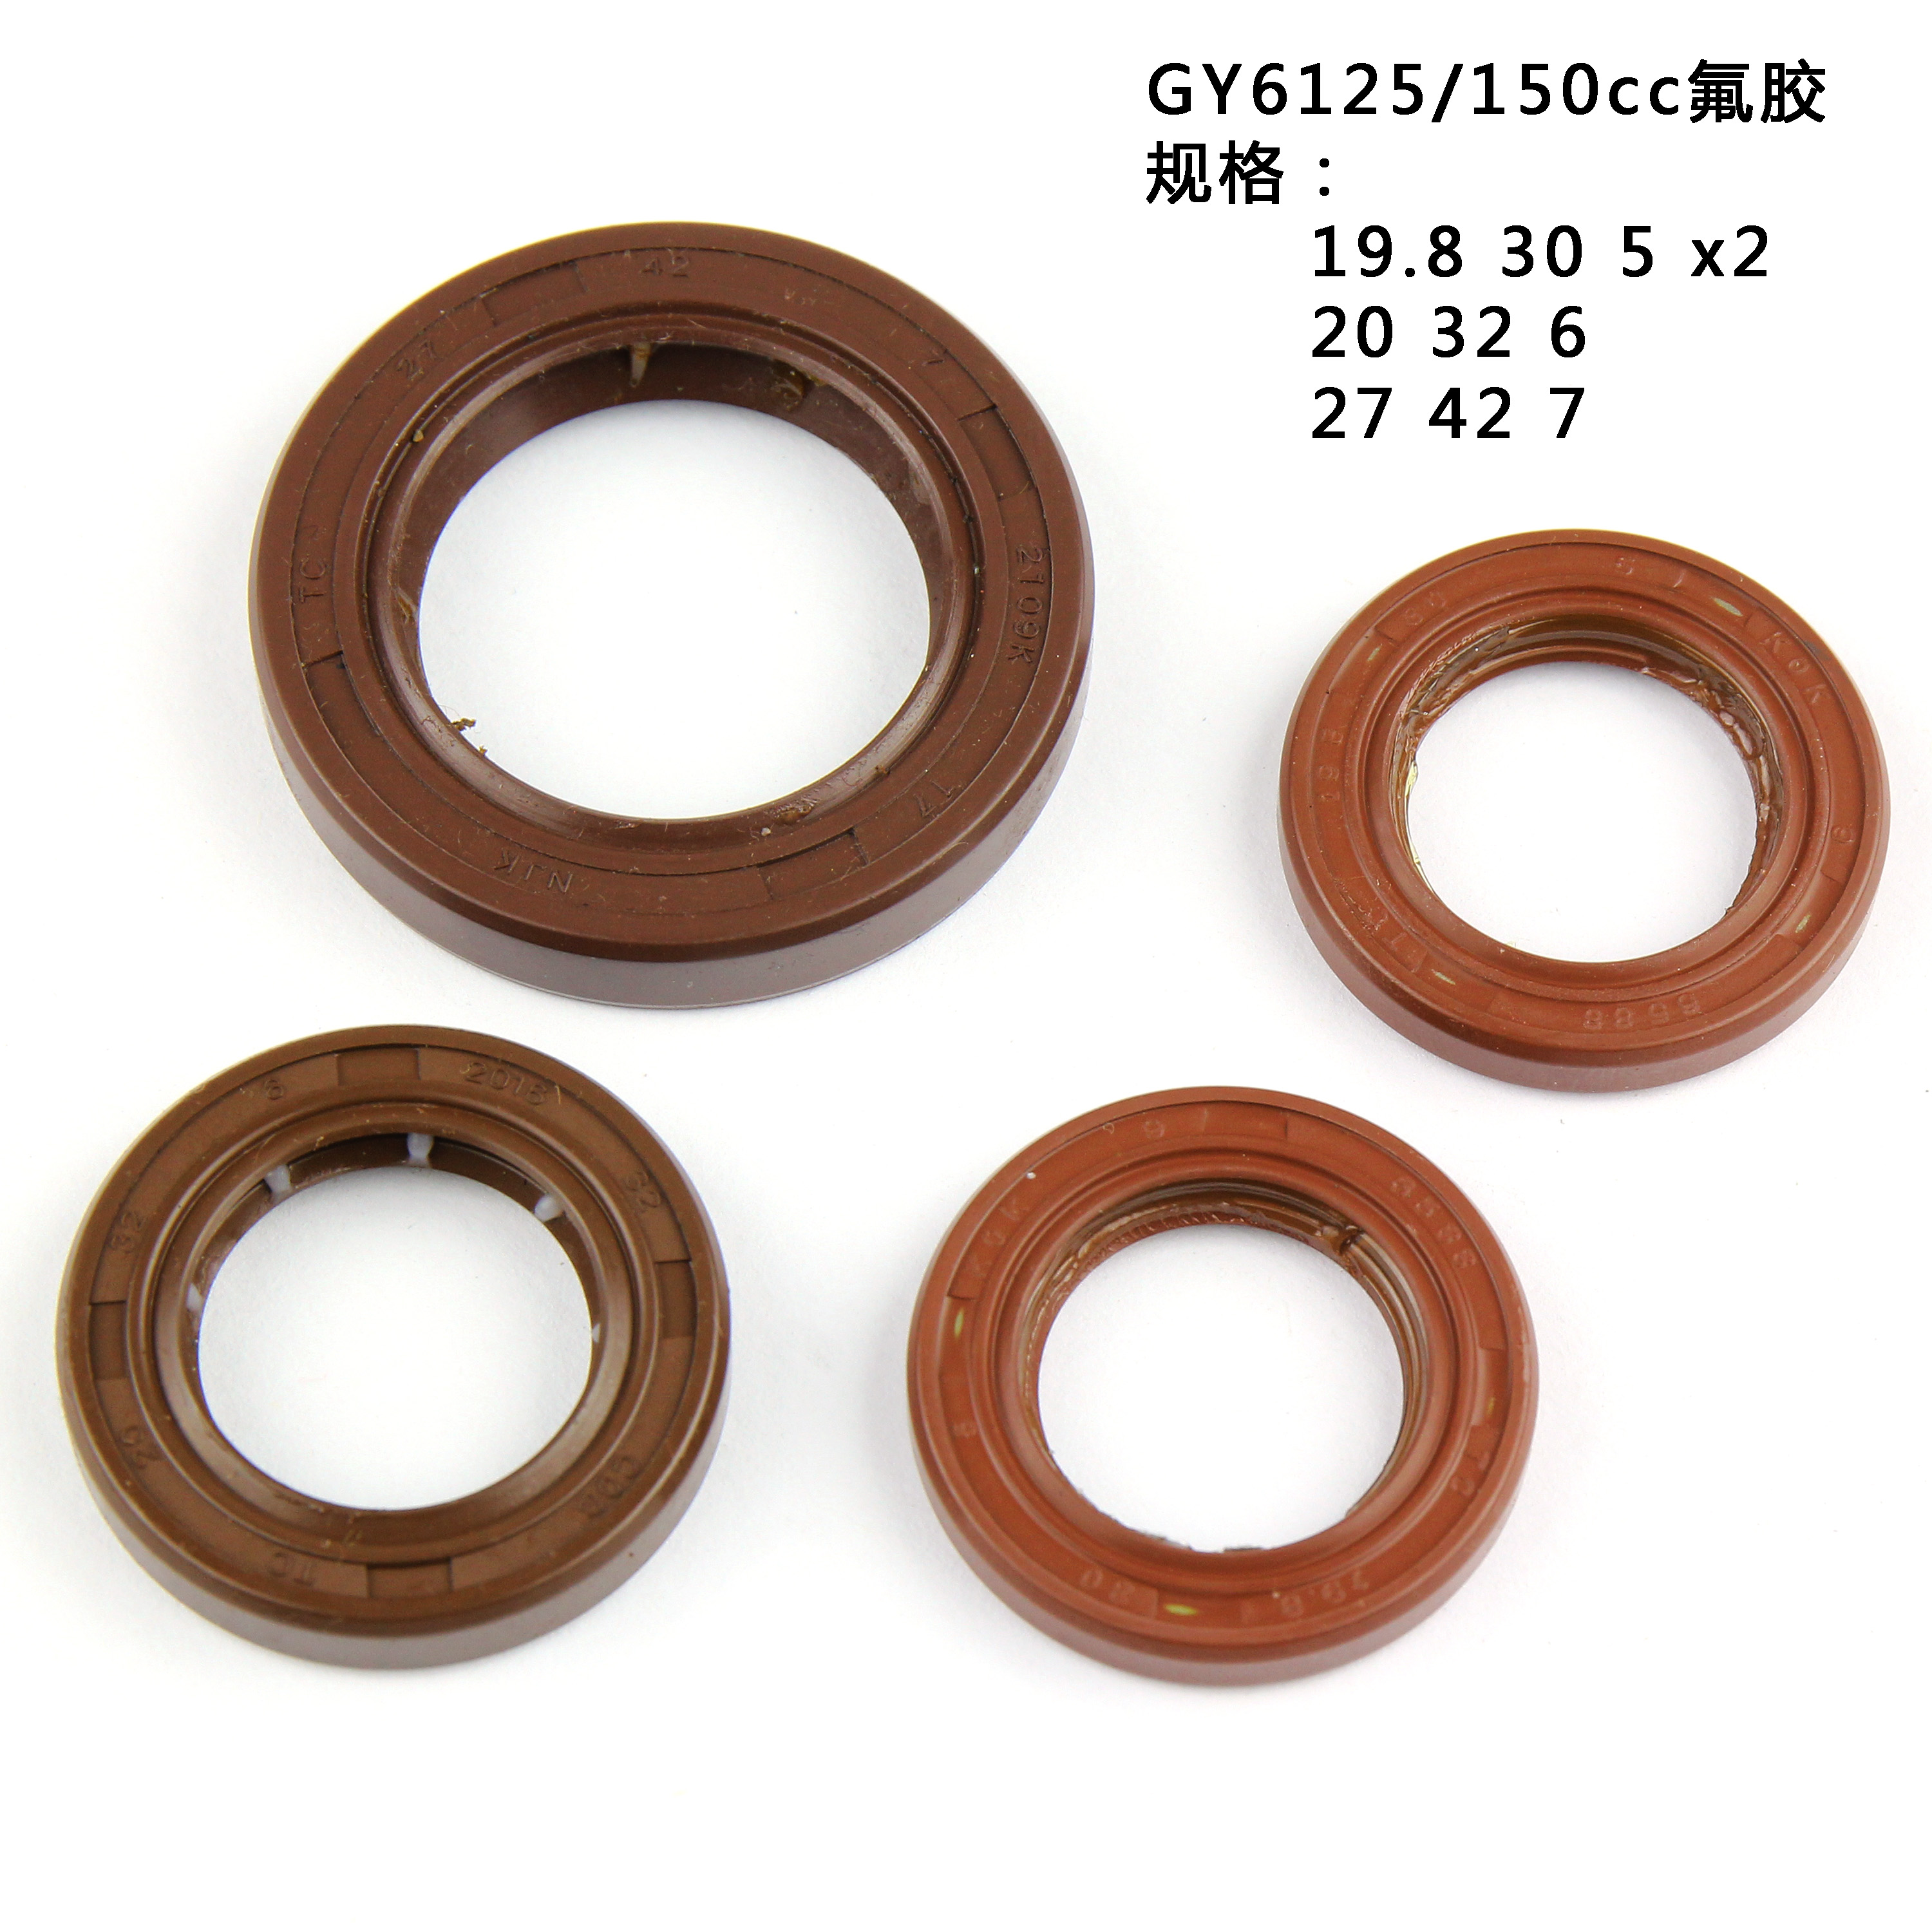 Jianshe Atv 400cc Valve Output Crankshaft Oil Seal O Shape 14266 20131 7 Pin Wiring Harness High Quality Fluorine Rubber Set Gy6 125 150cc Fkm Scooter Yf